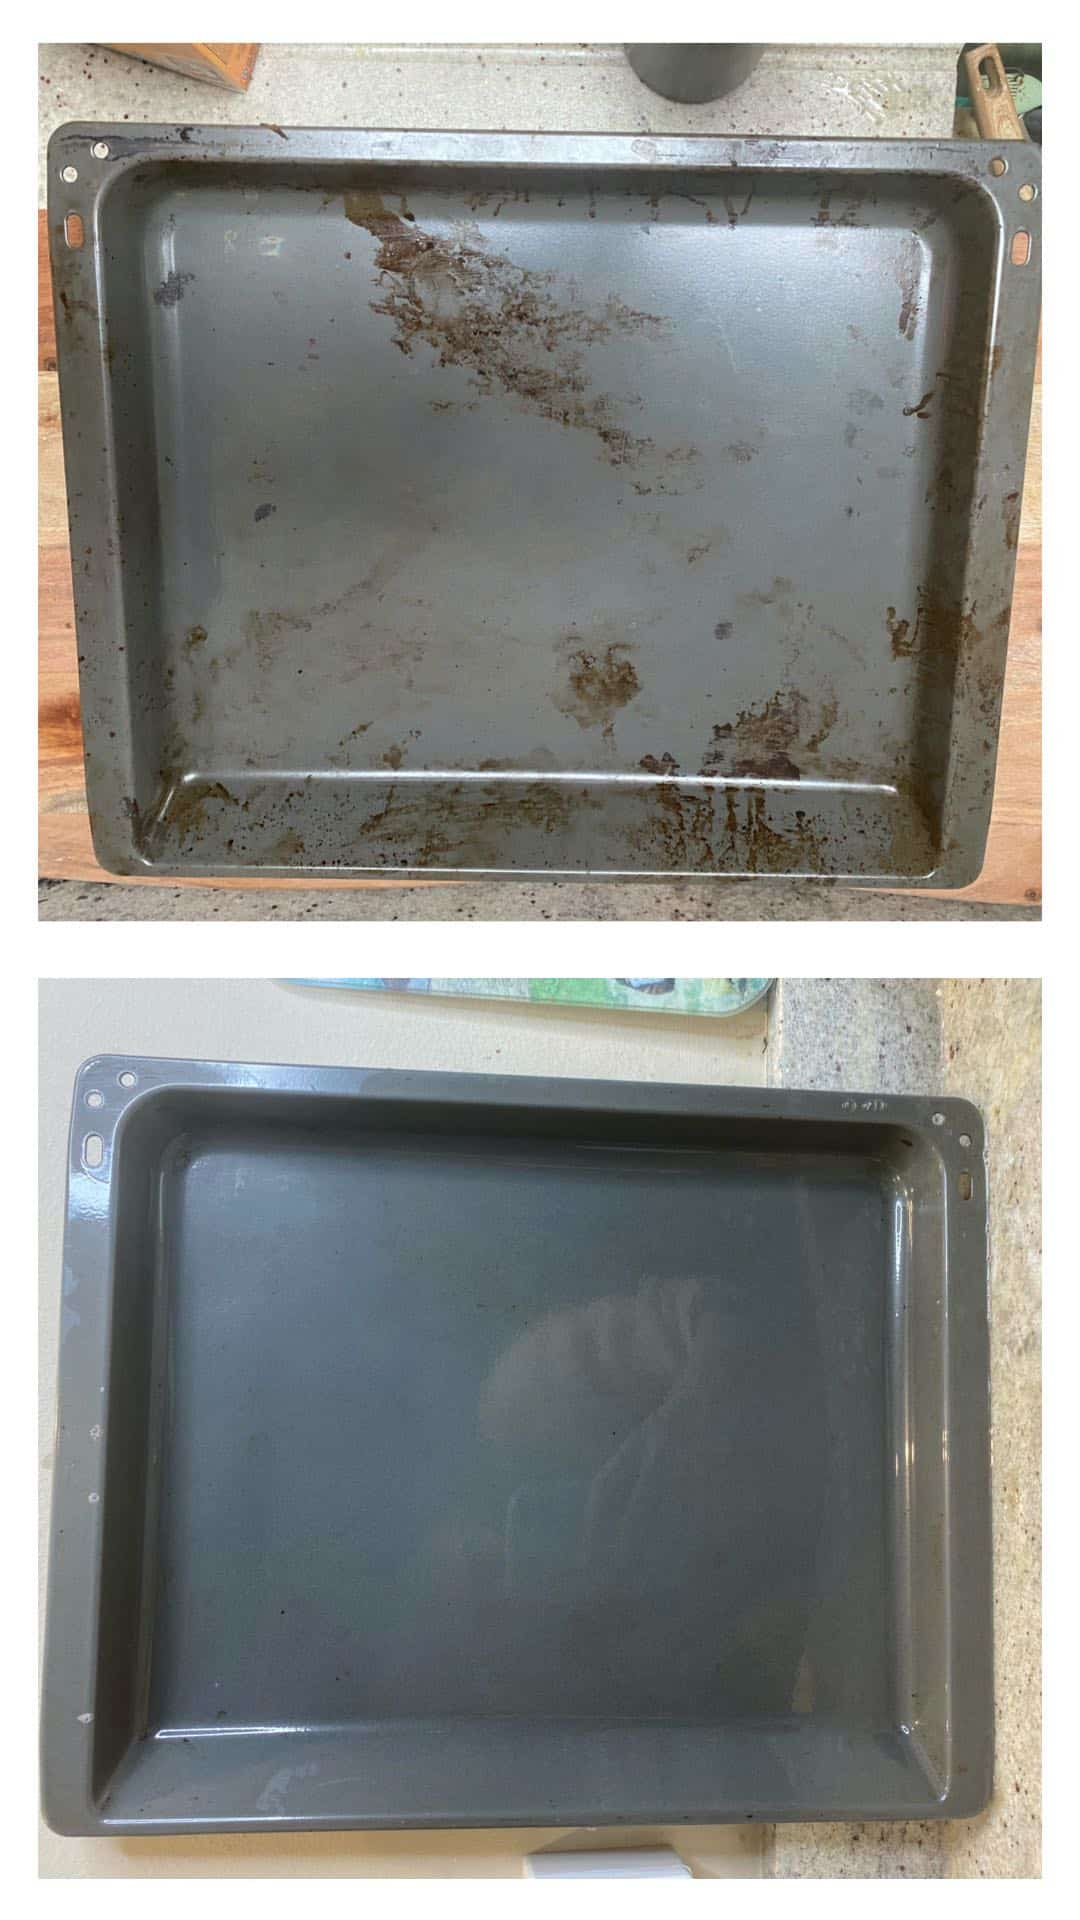 Comparing dirty and clean baking tray